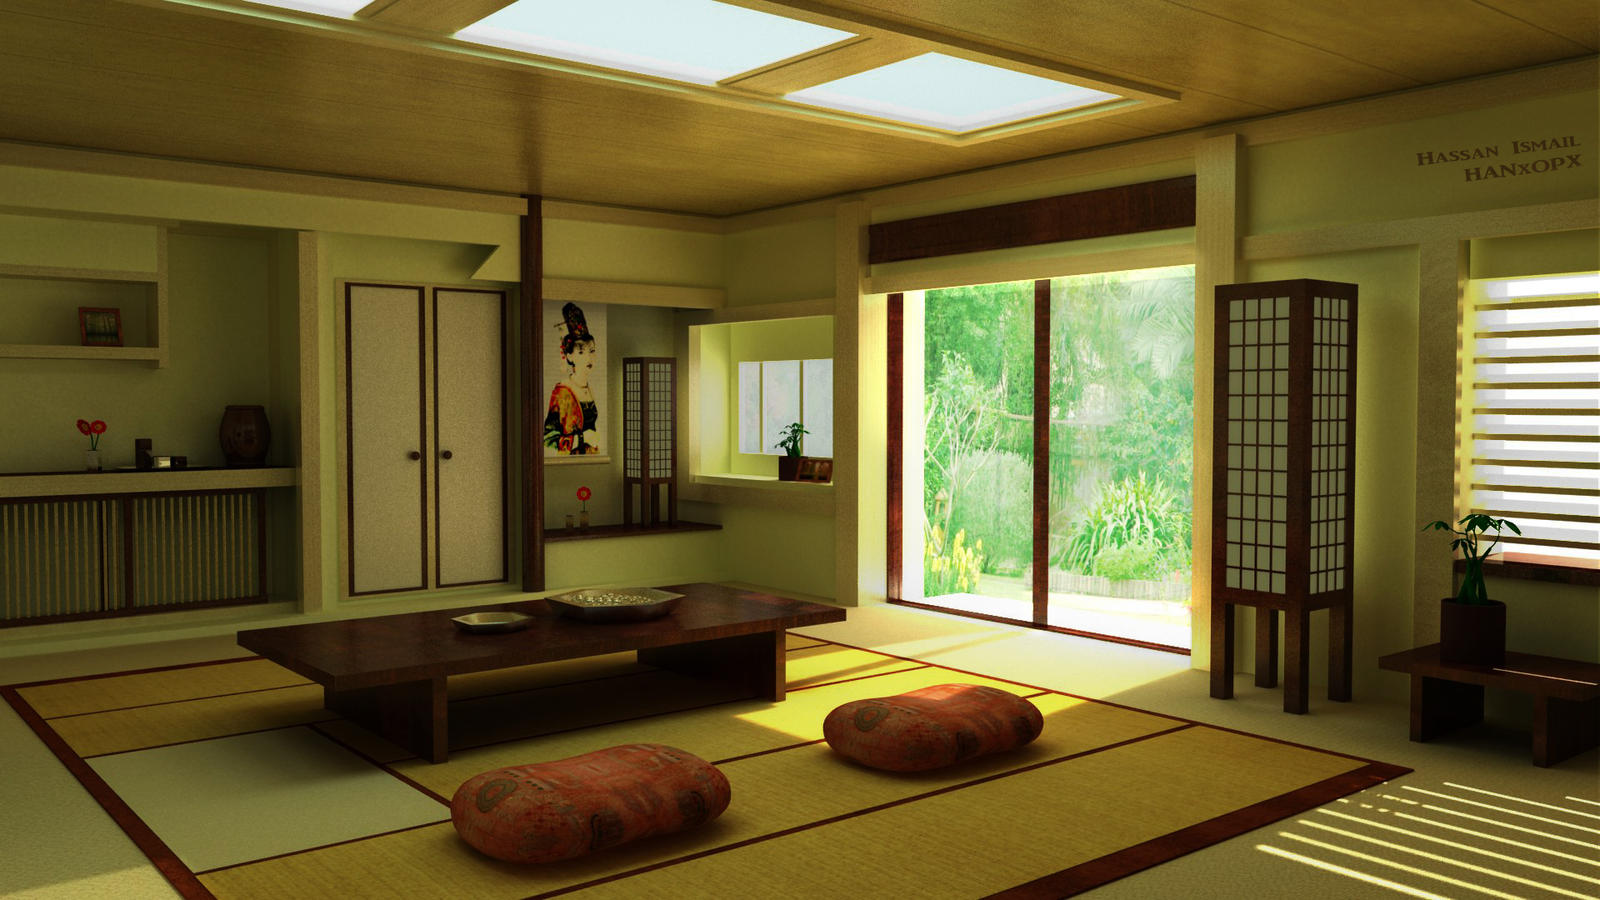 Japanese interior 01 by hanxopx on deviantart for Asian home design